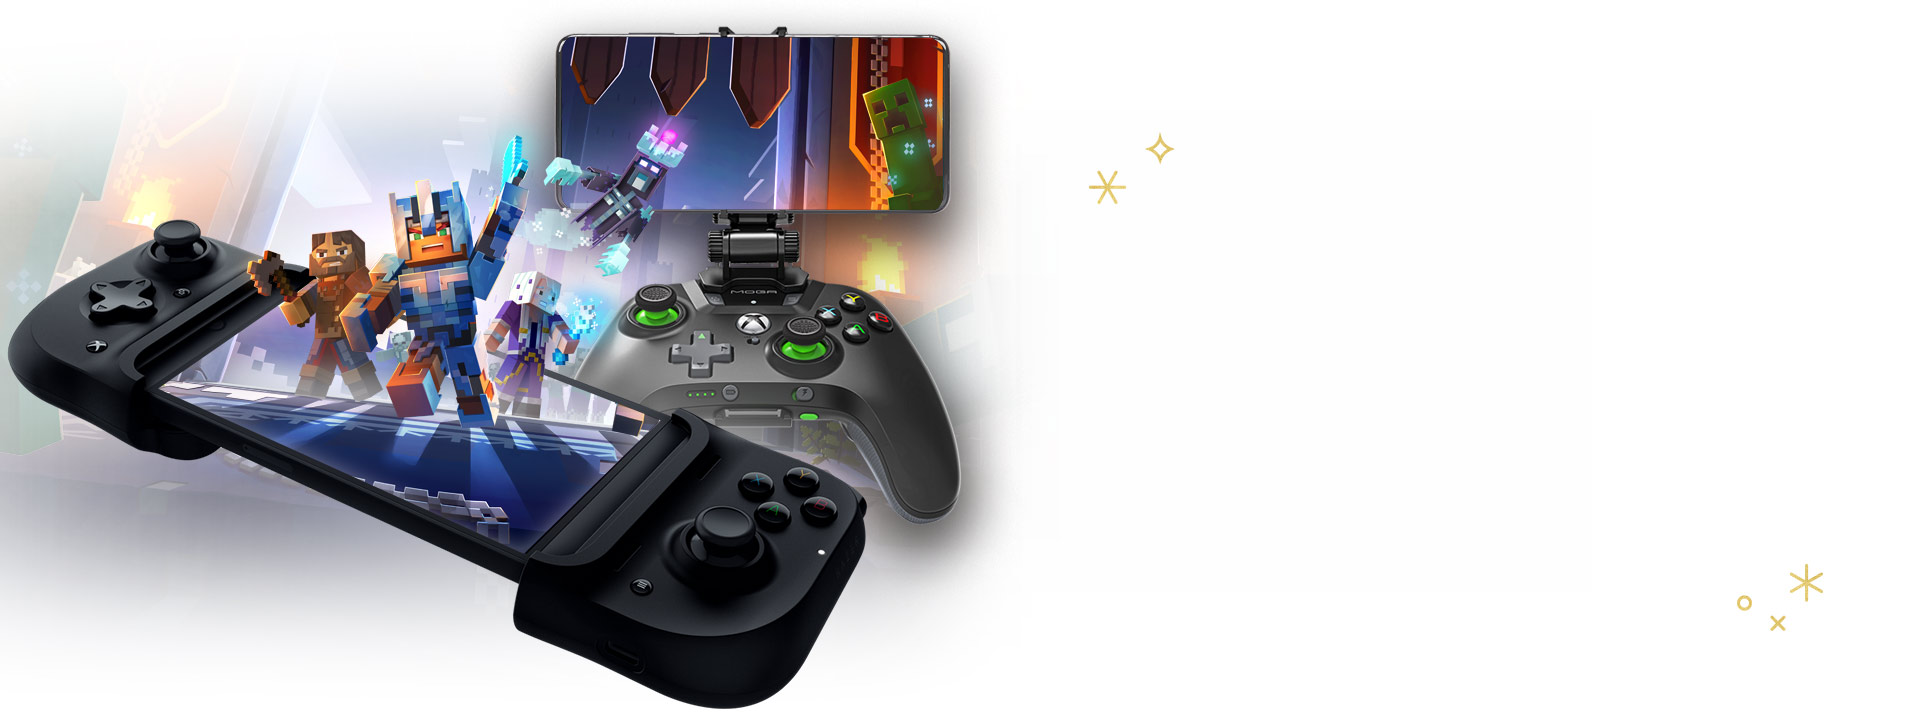 Cloud gaming accessories, including Razer Kishi and PowerA MOGA Mobile Gaming Clip for Xbox wireless controllers, with Minecraft characters imposed.